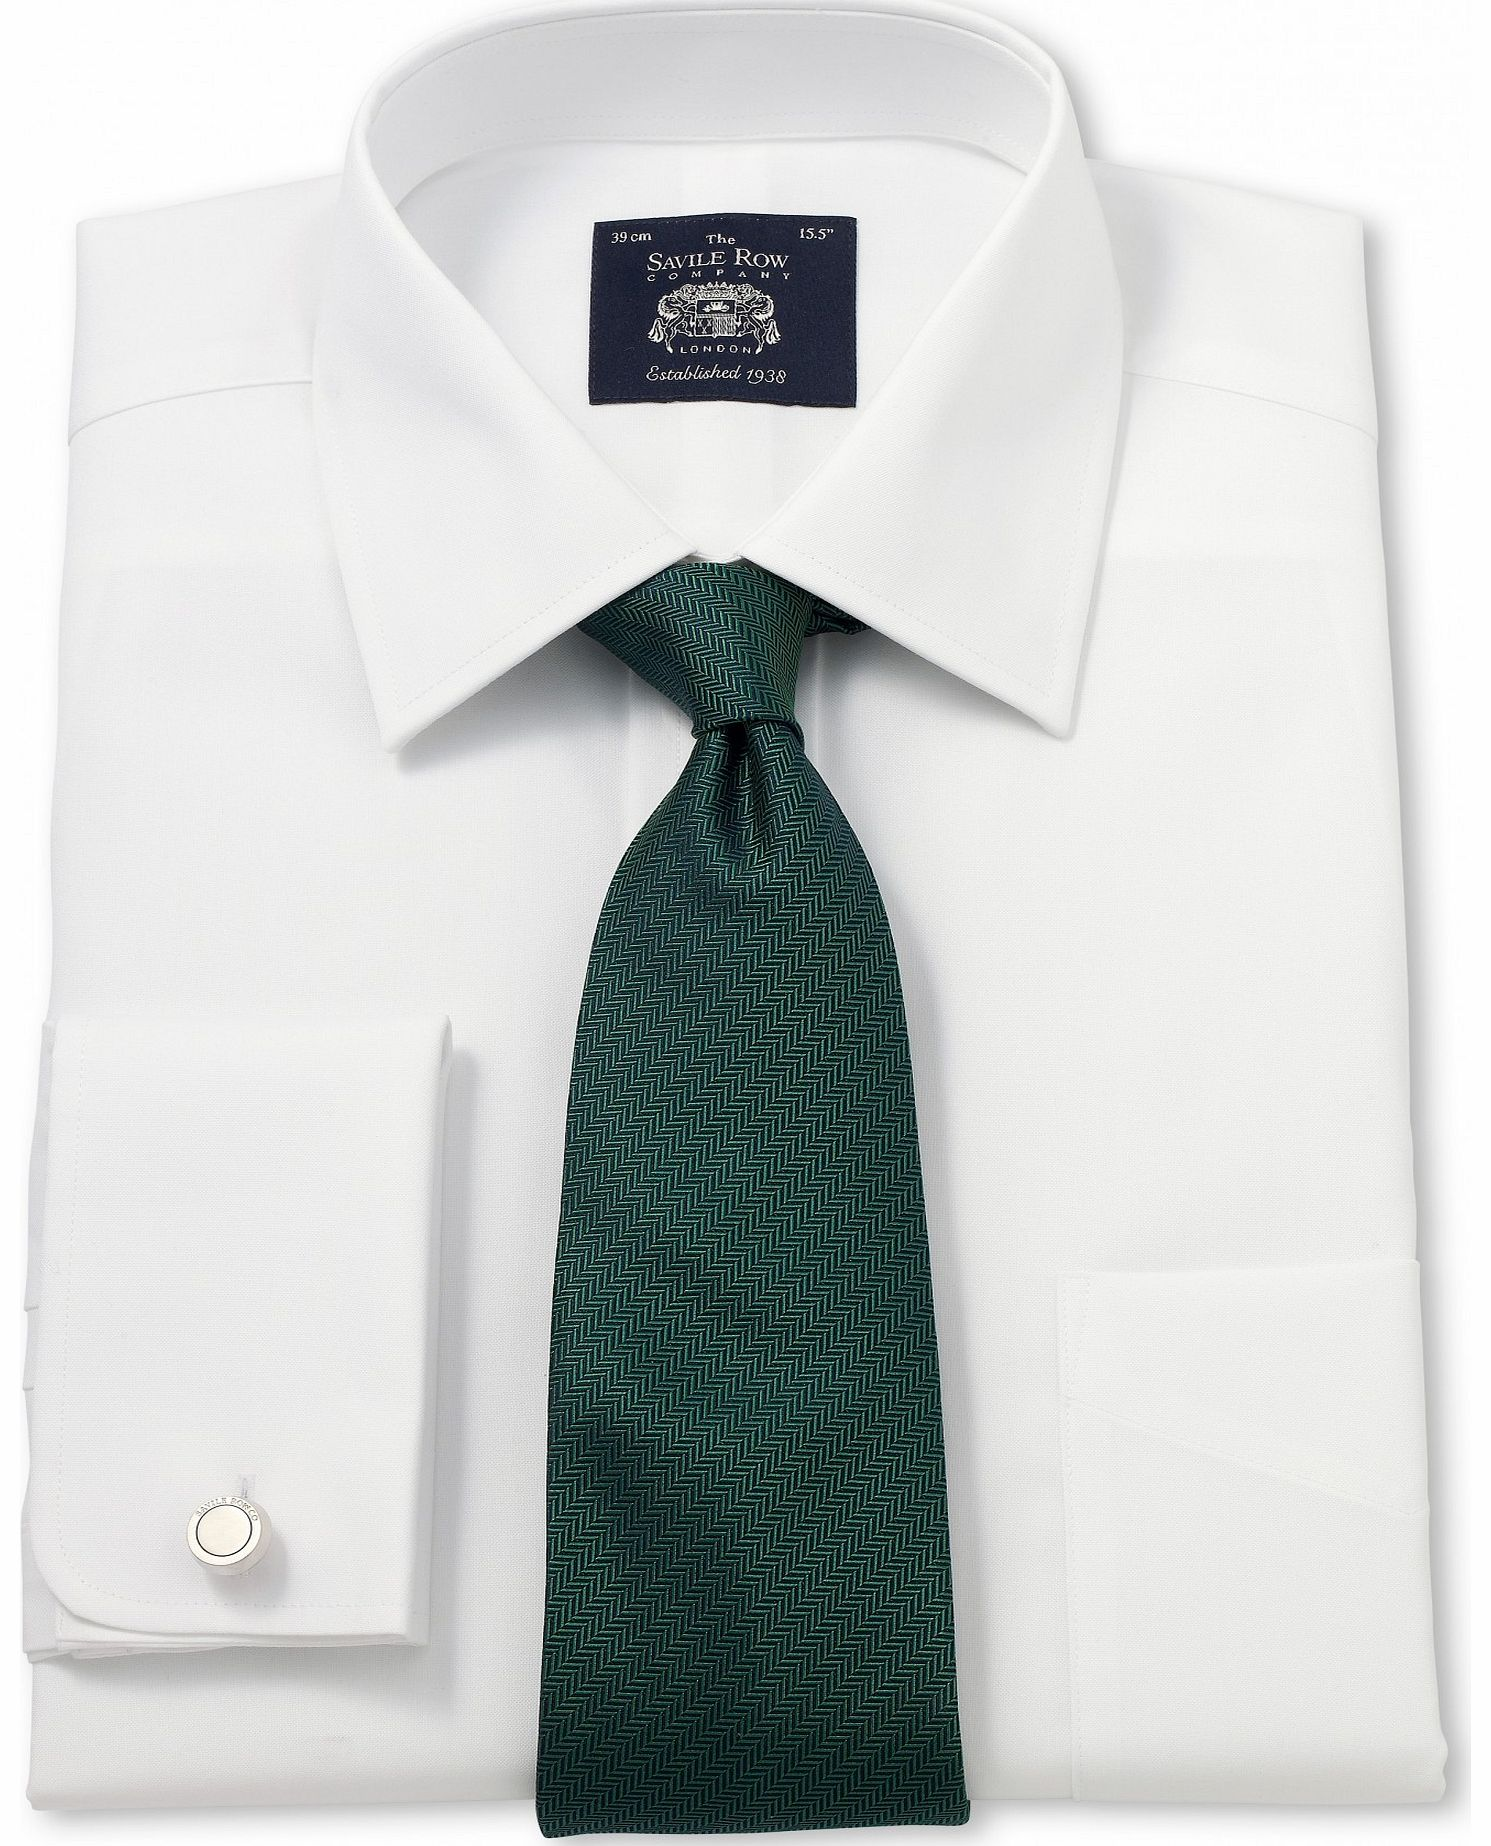 Savile Row Company White Non-Iron Classic Fit Shirt 20`` Standard & product image